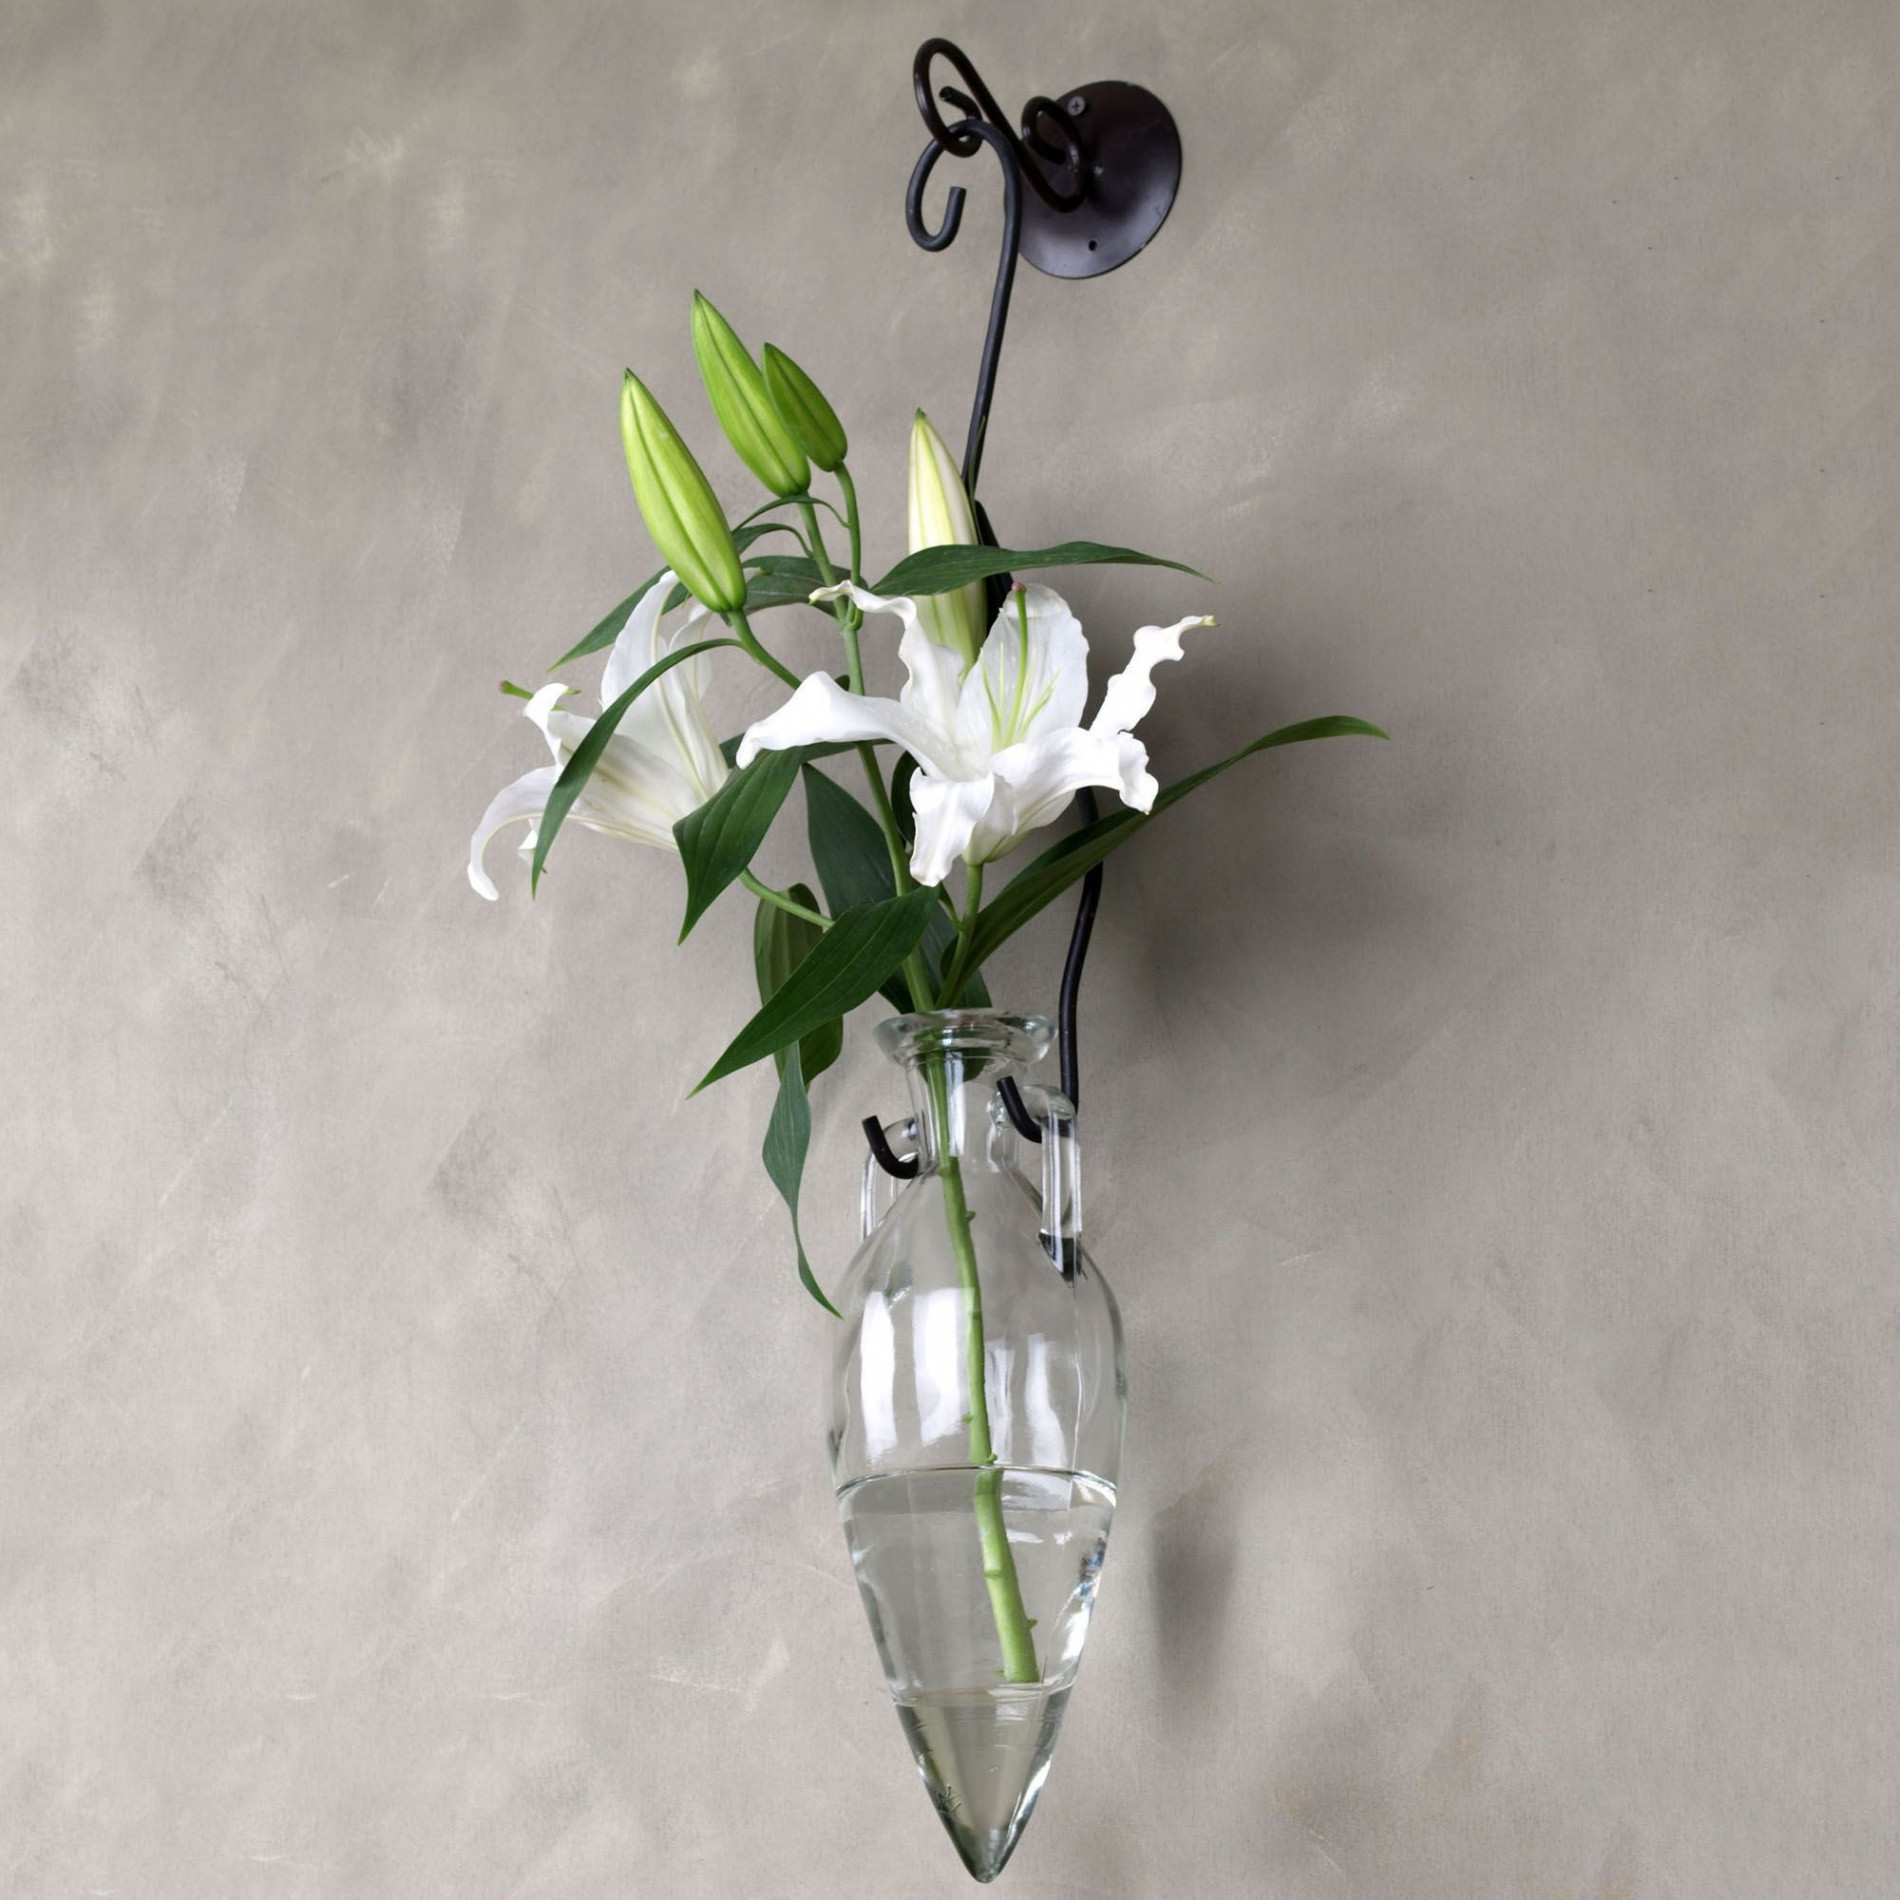 cheap ikebana vases of h vases wall hanging flower vase newspaper i 0d scheme wall scheme for h vases wall hanging flower vase newspaper i 0d scheme wall scheme vase blanc deco